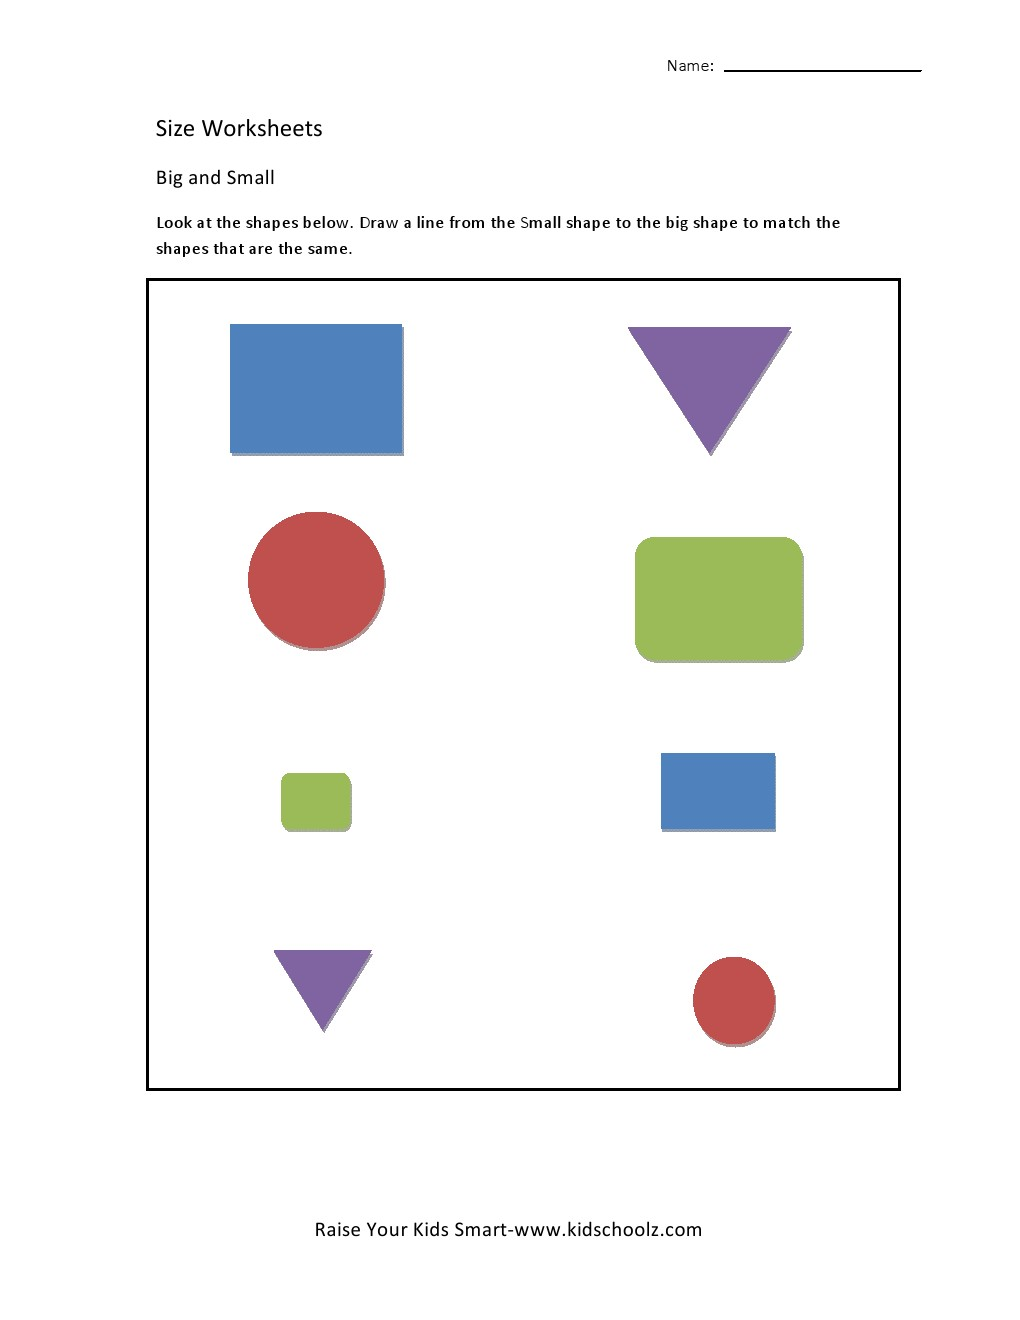 Size Worksheets - Matching Shapes -